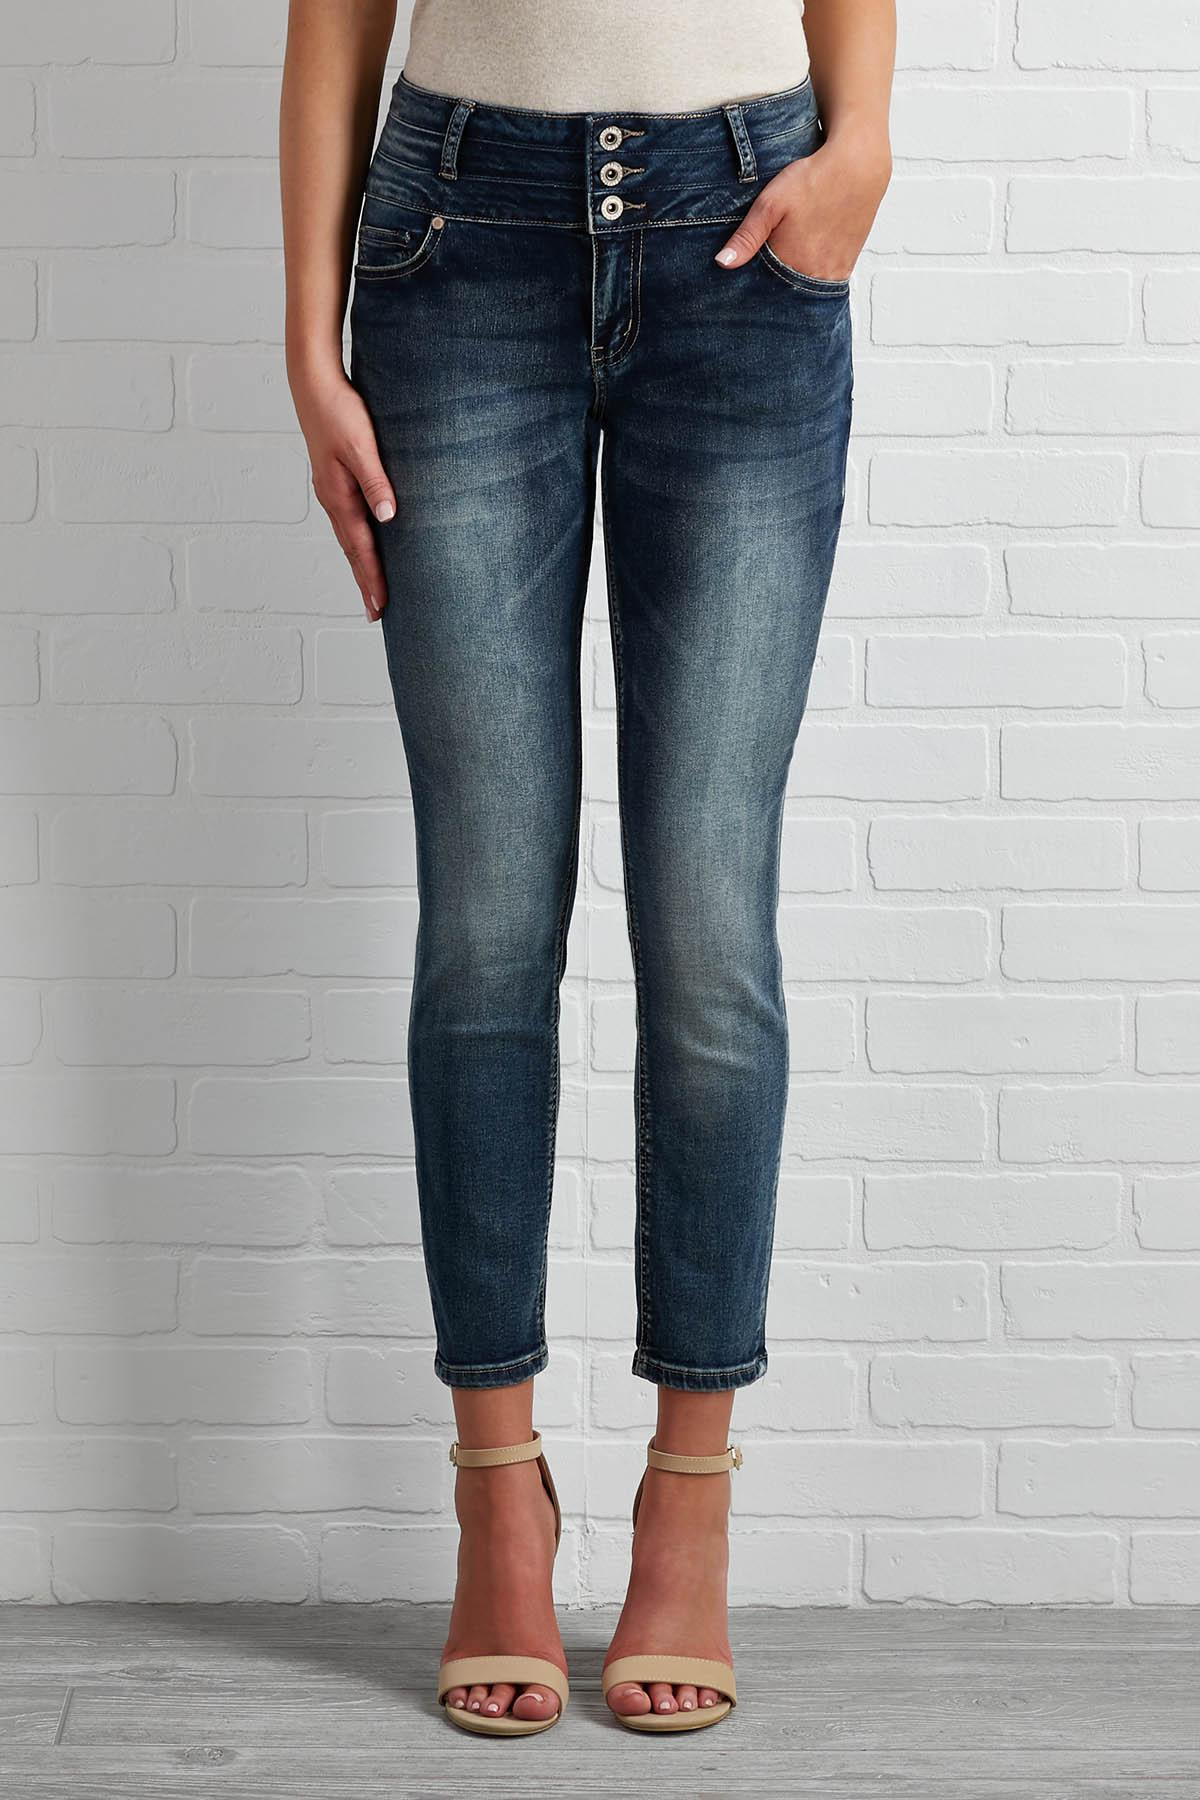 Here's The Skinny Jeans